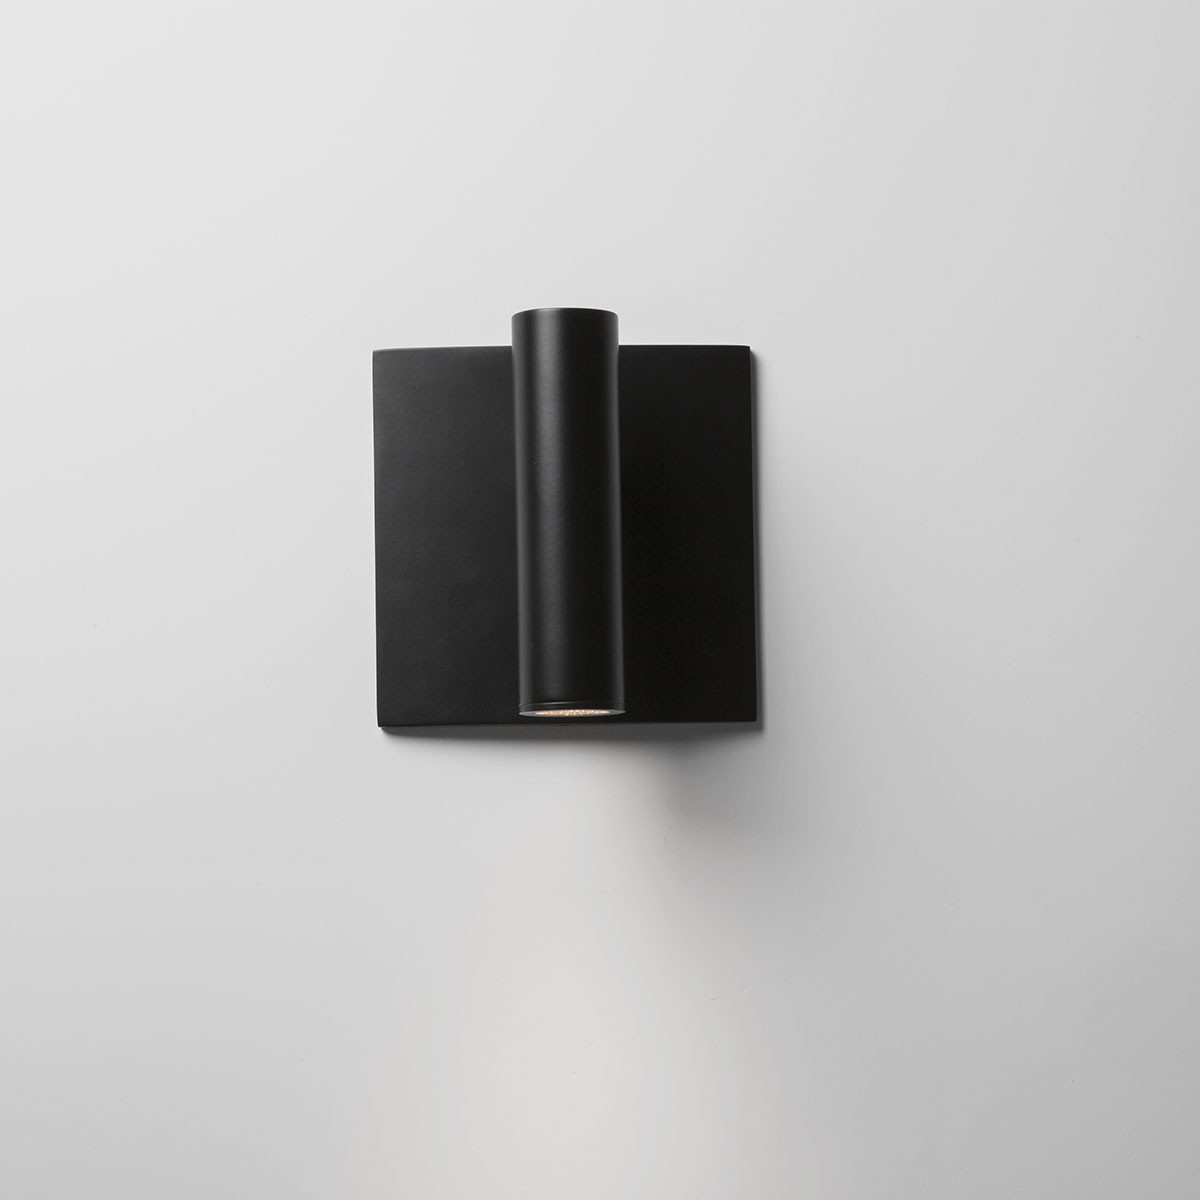 Black Square Wall Lights : Astro Enna Square Switched Black LED Wall Light at UK Electrical Supplies.